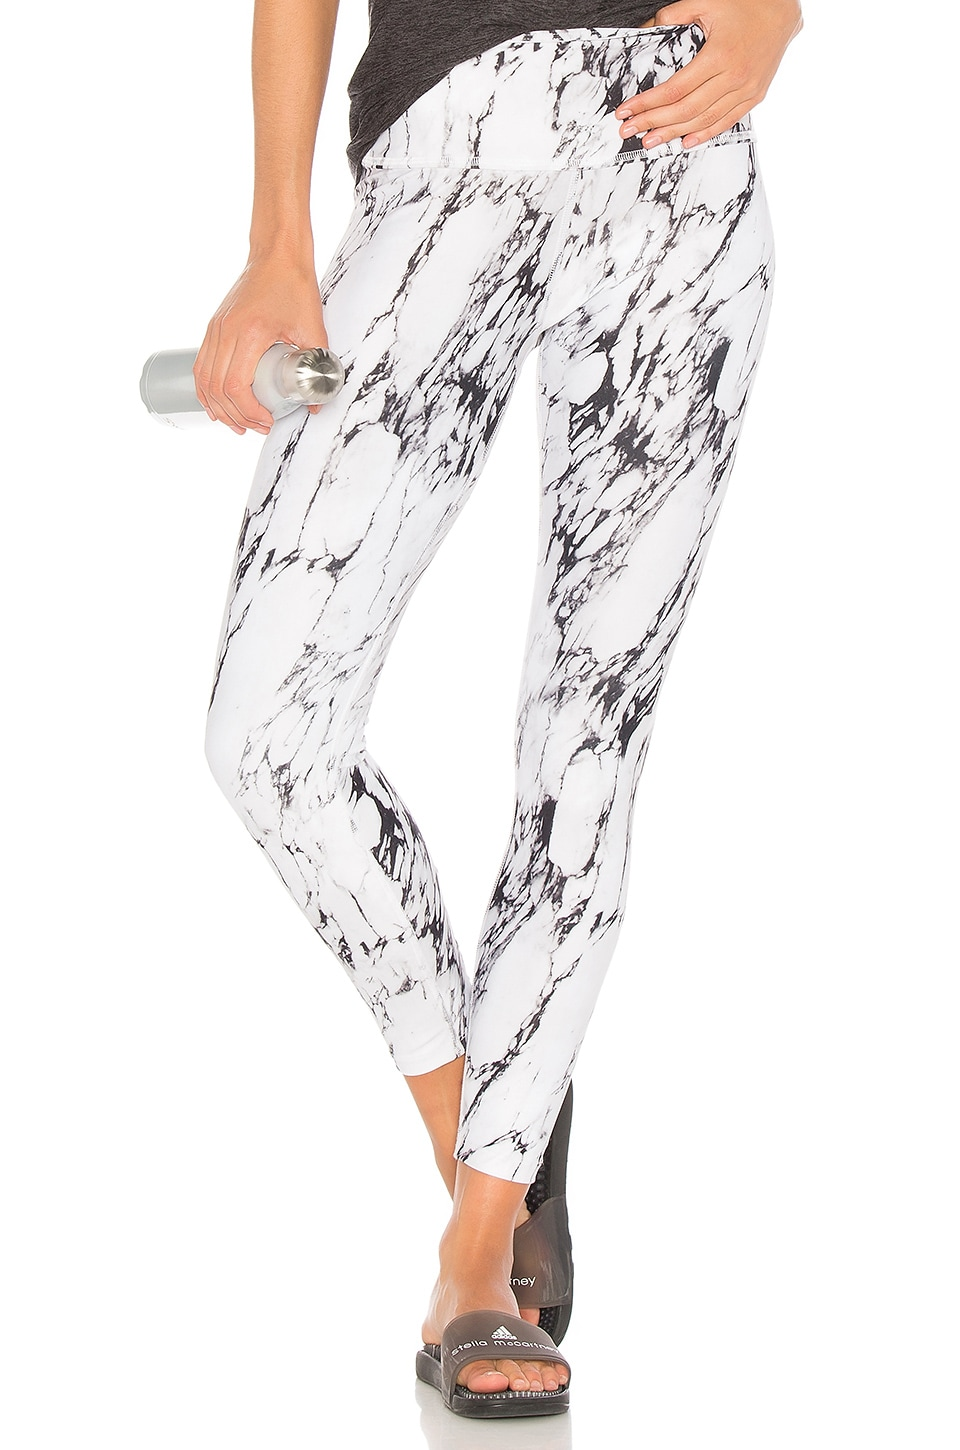 Beyond Yoga Back Cross Legging in White Marble